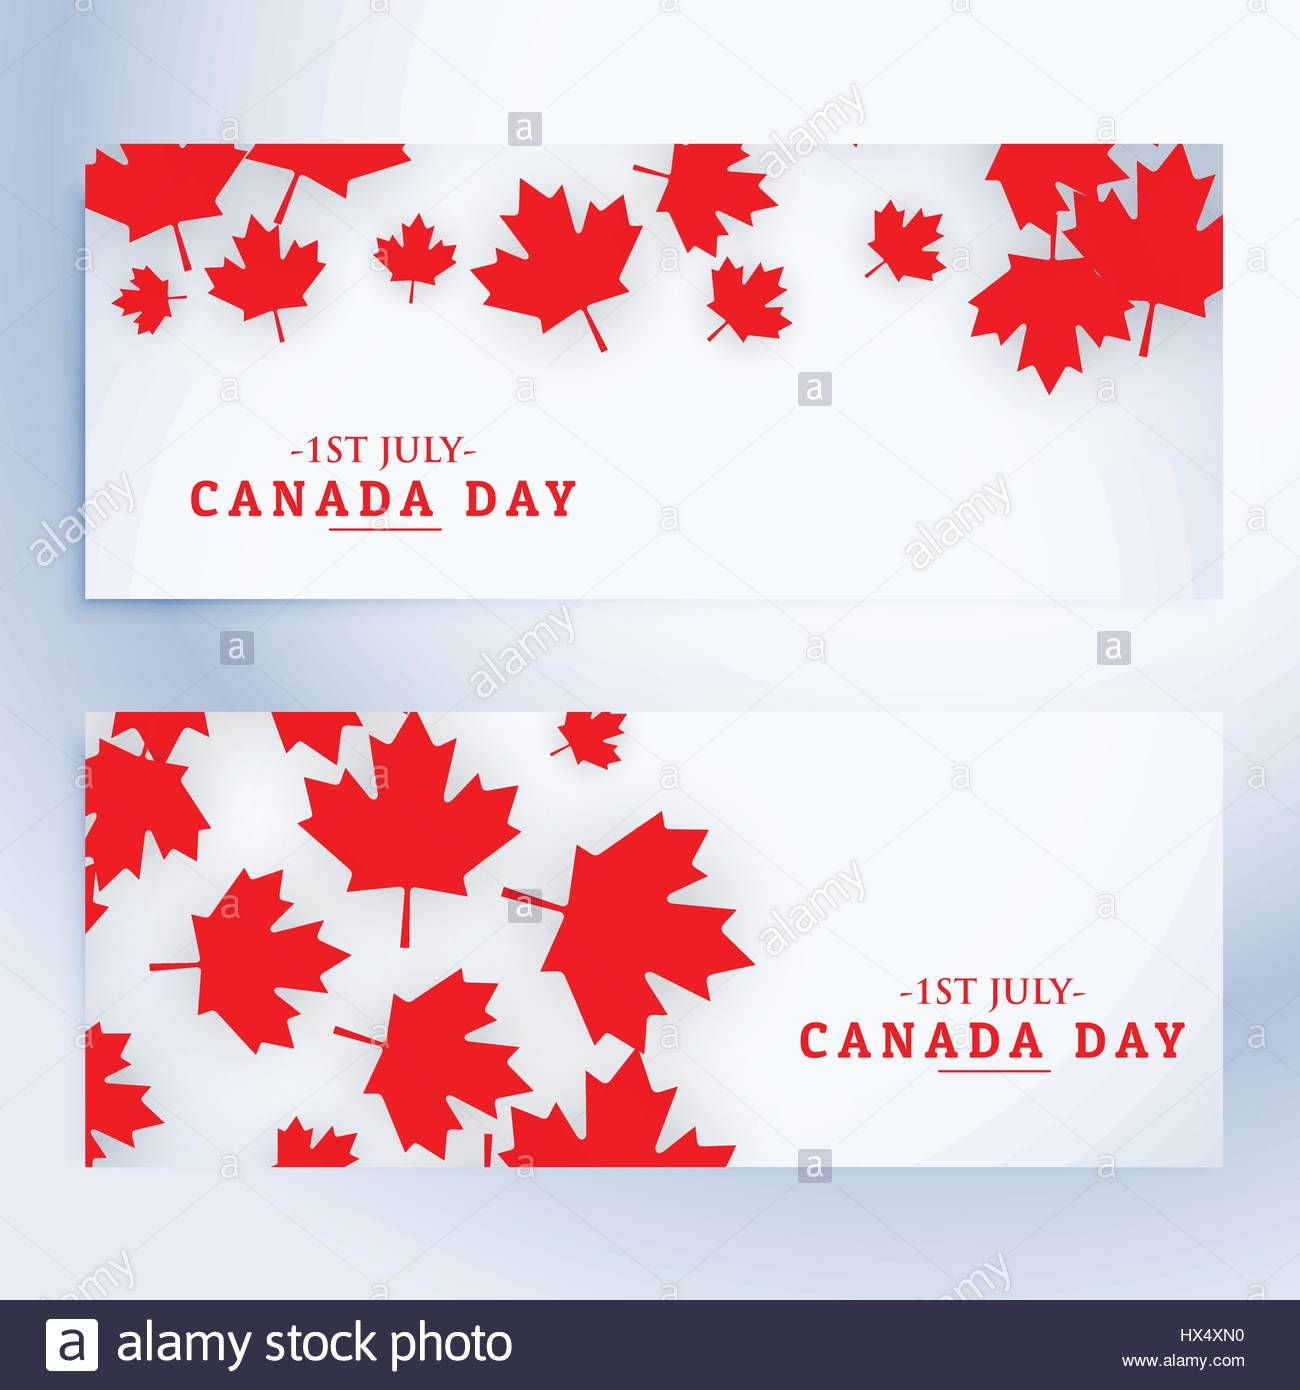 1st july canada day banners - Stock Vector